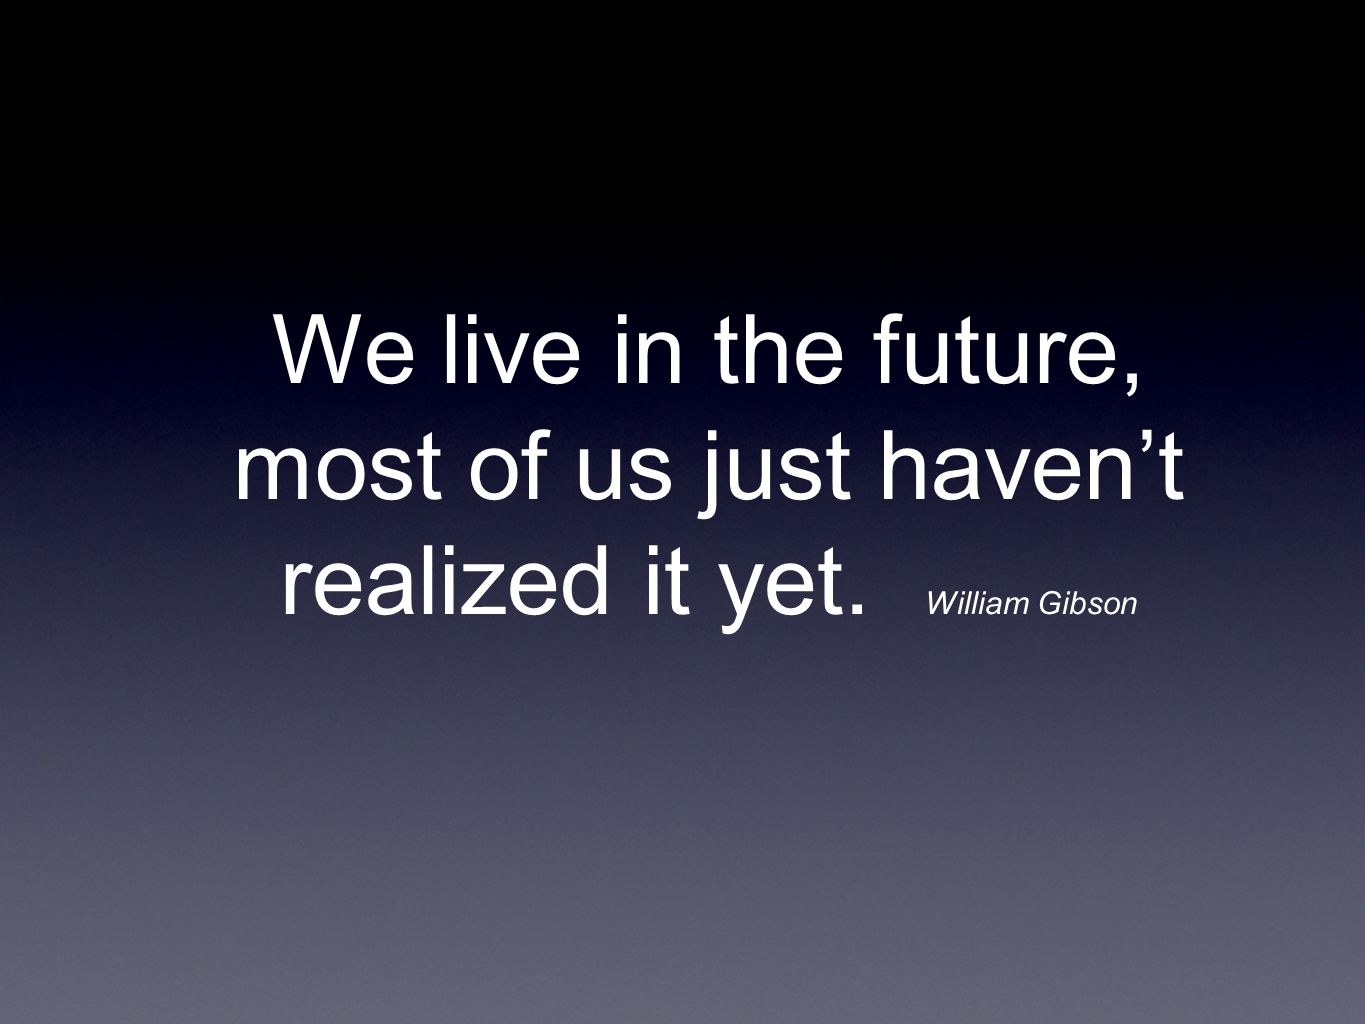 We live in the future, most of us just haven't realized it yet. William Gibson